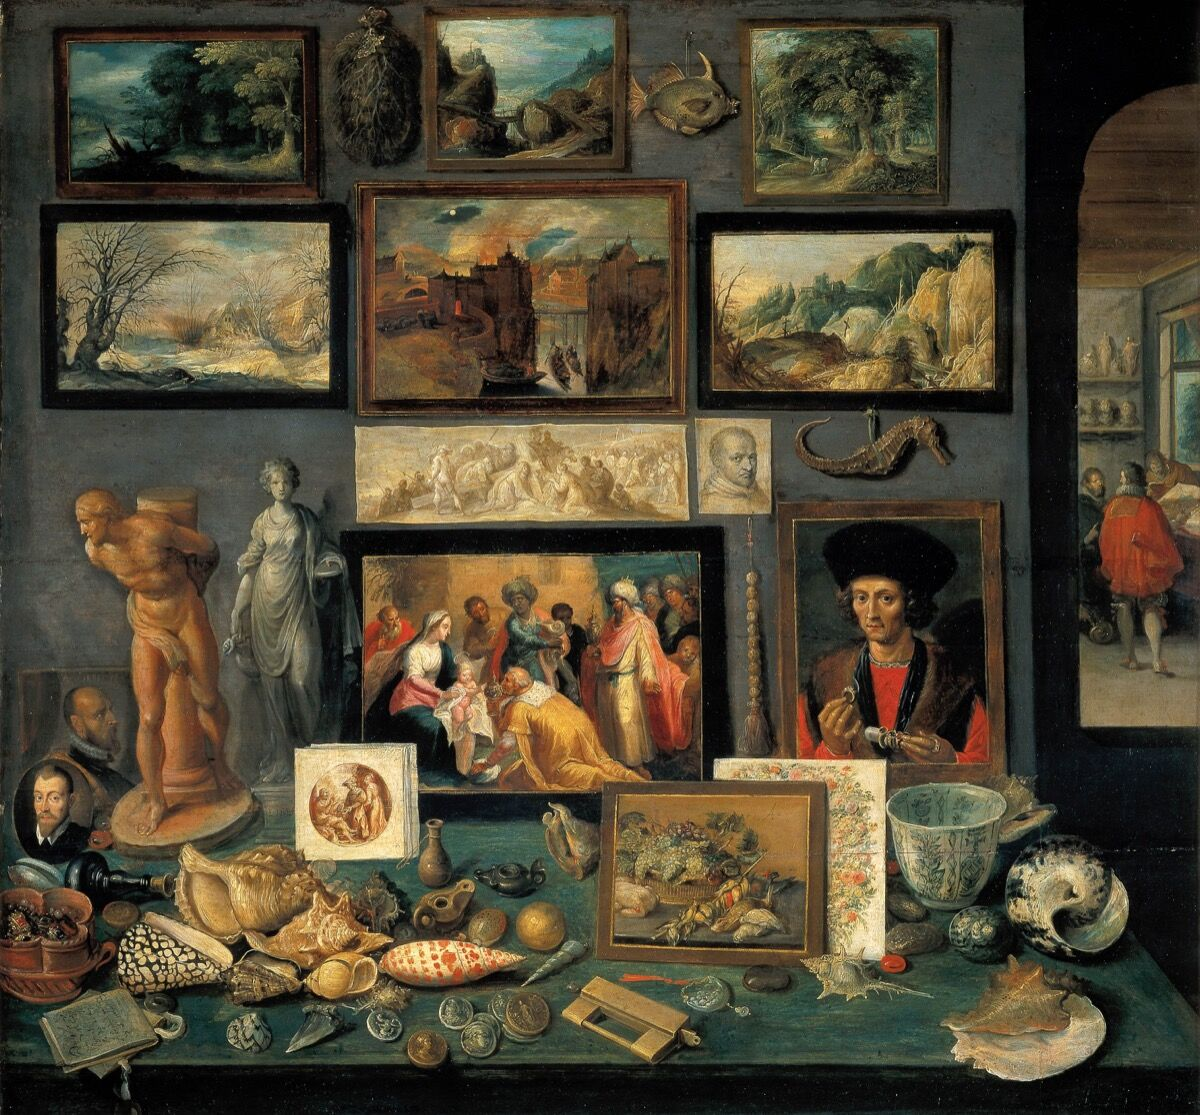 Frans Francken the Younger, Chamber of Art and Curiosities, 1636. Image via Wikimedia Commons.